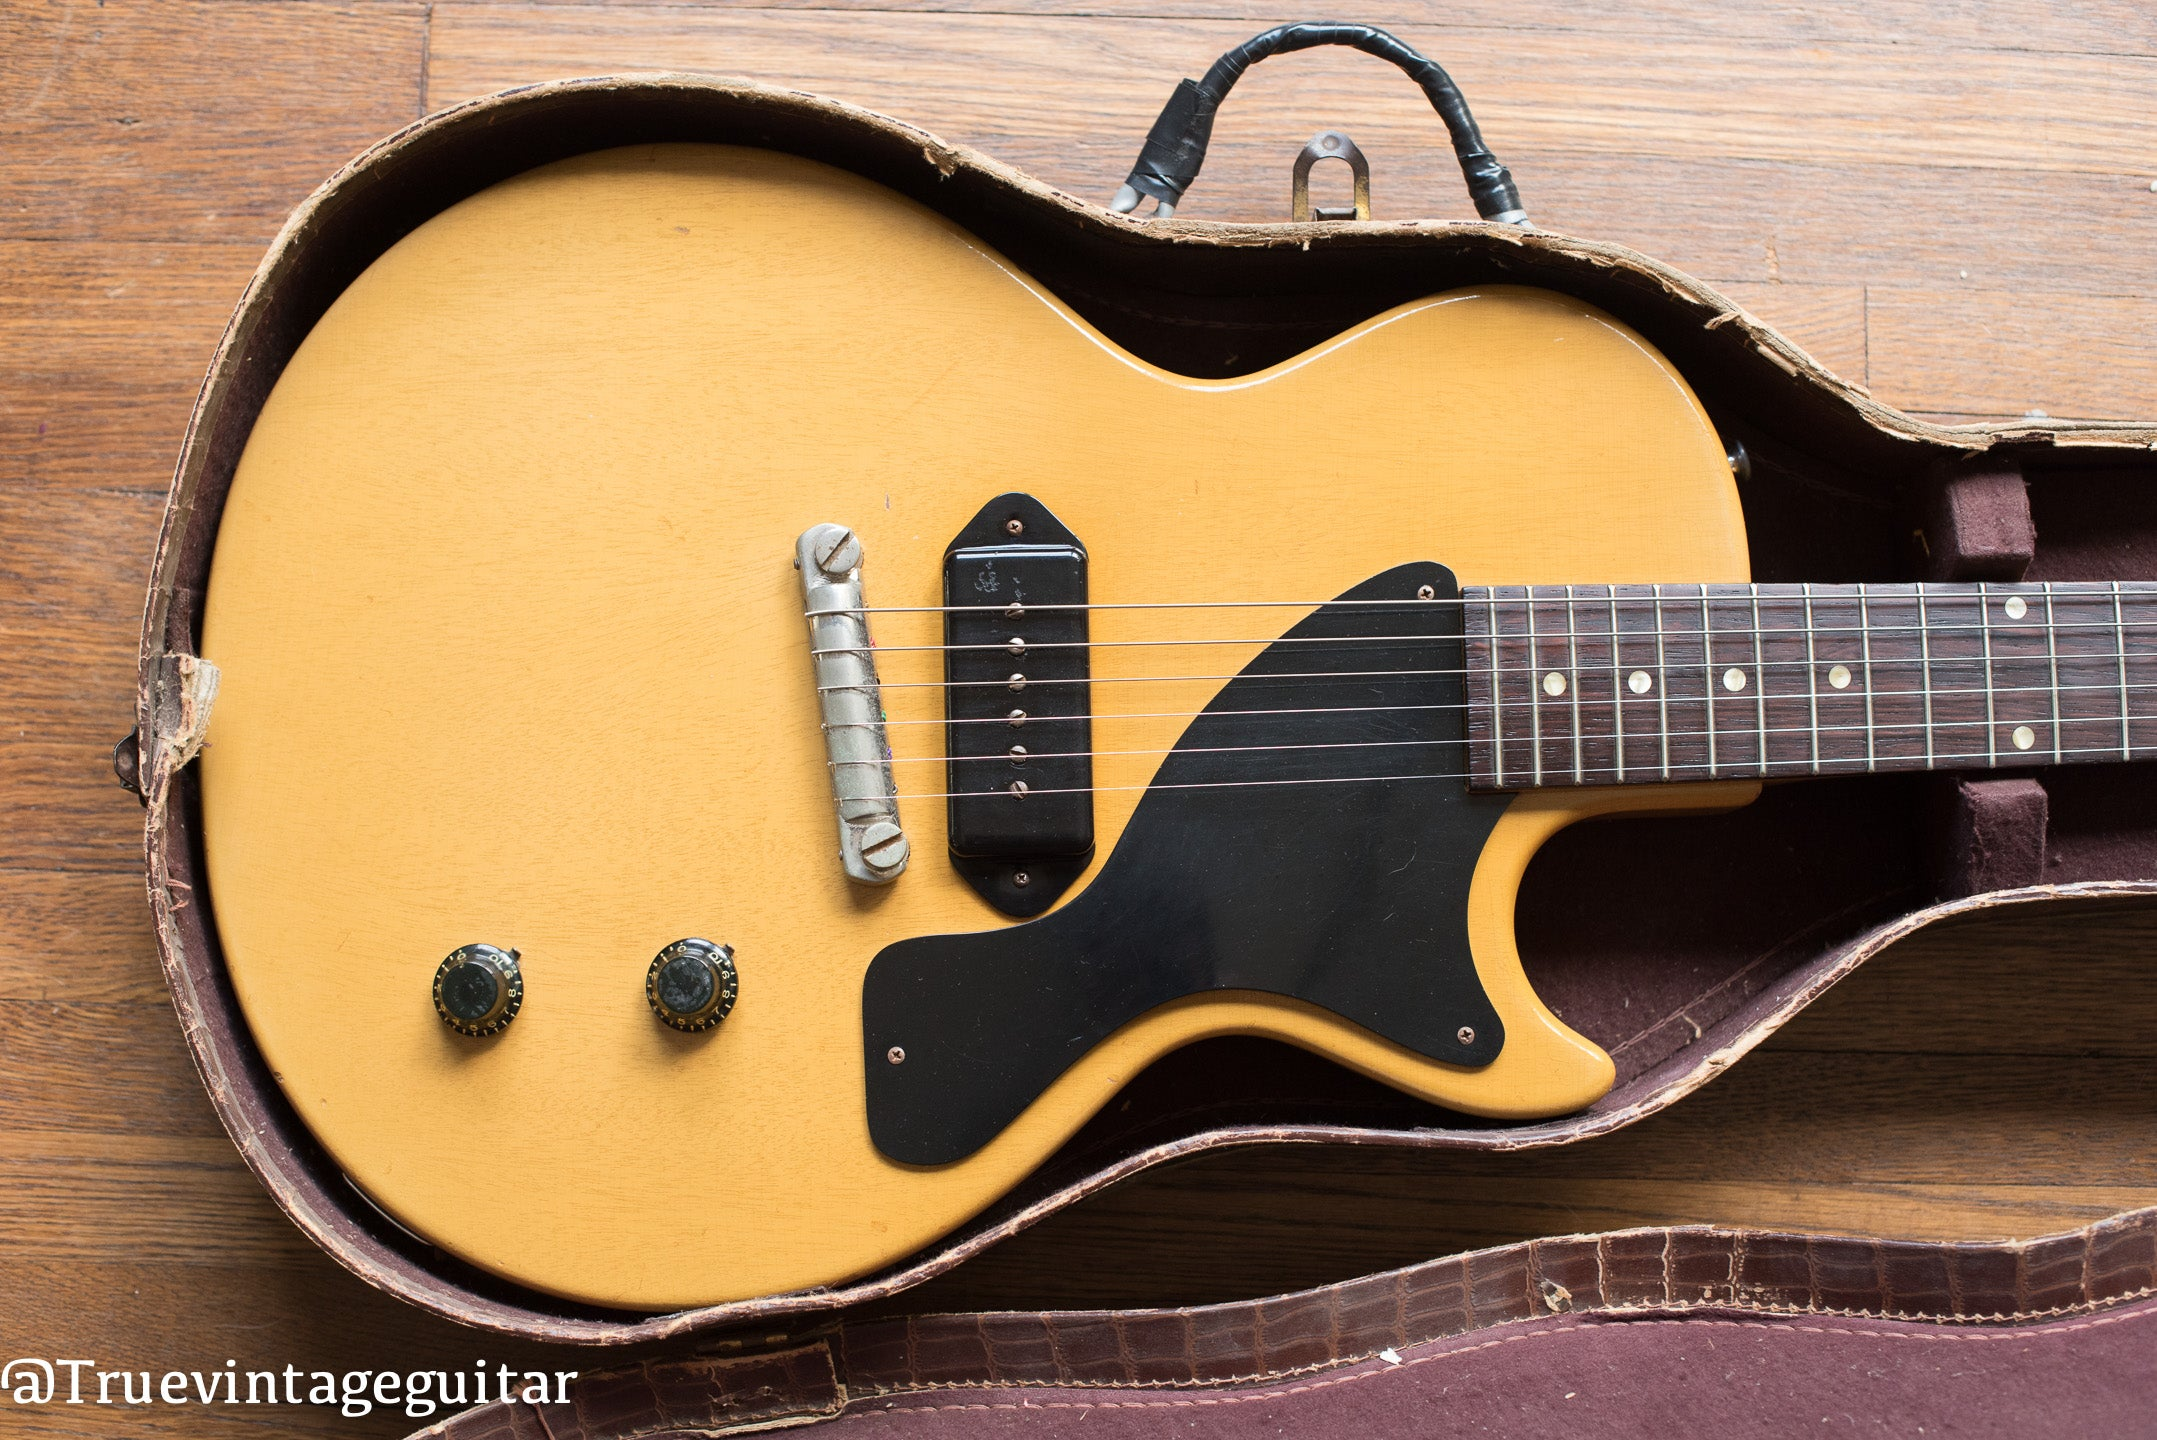 Vintage 1957 Gibson Les Paul yellow guitar